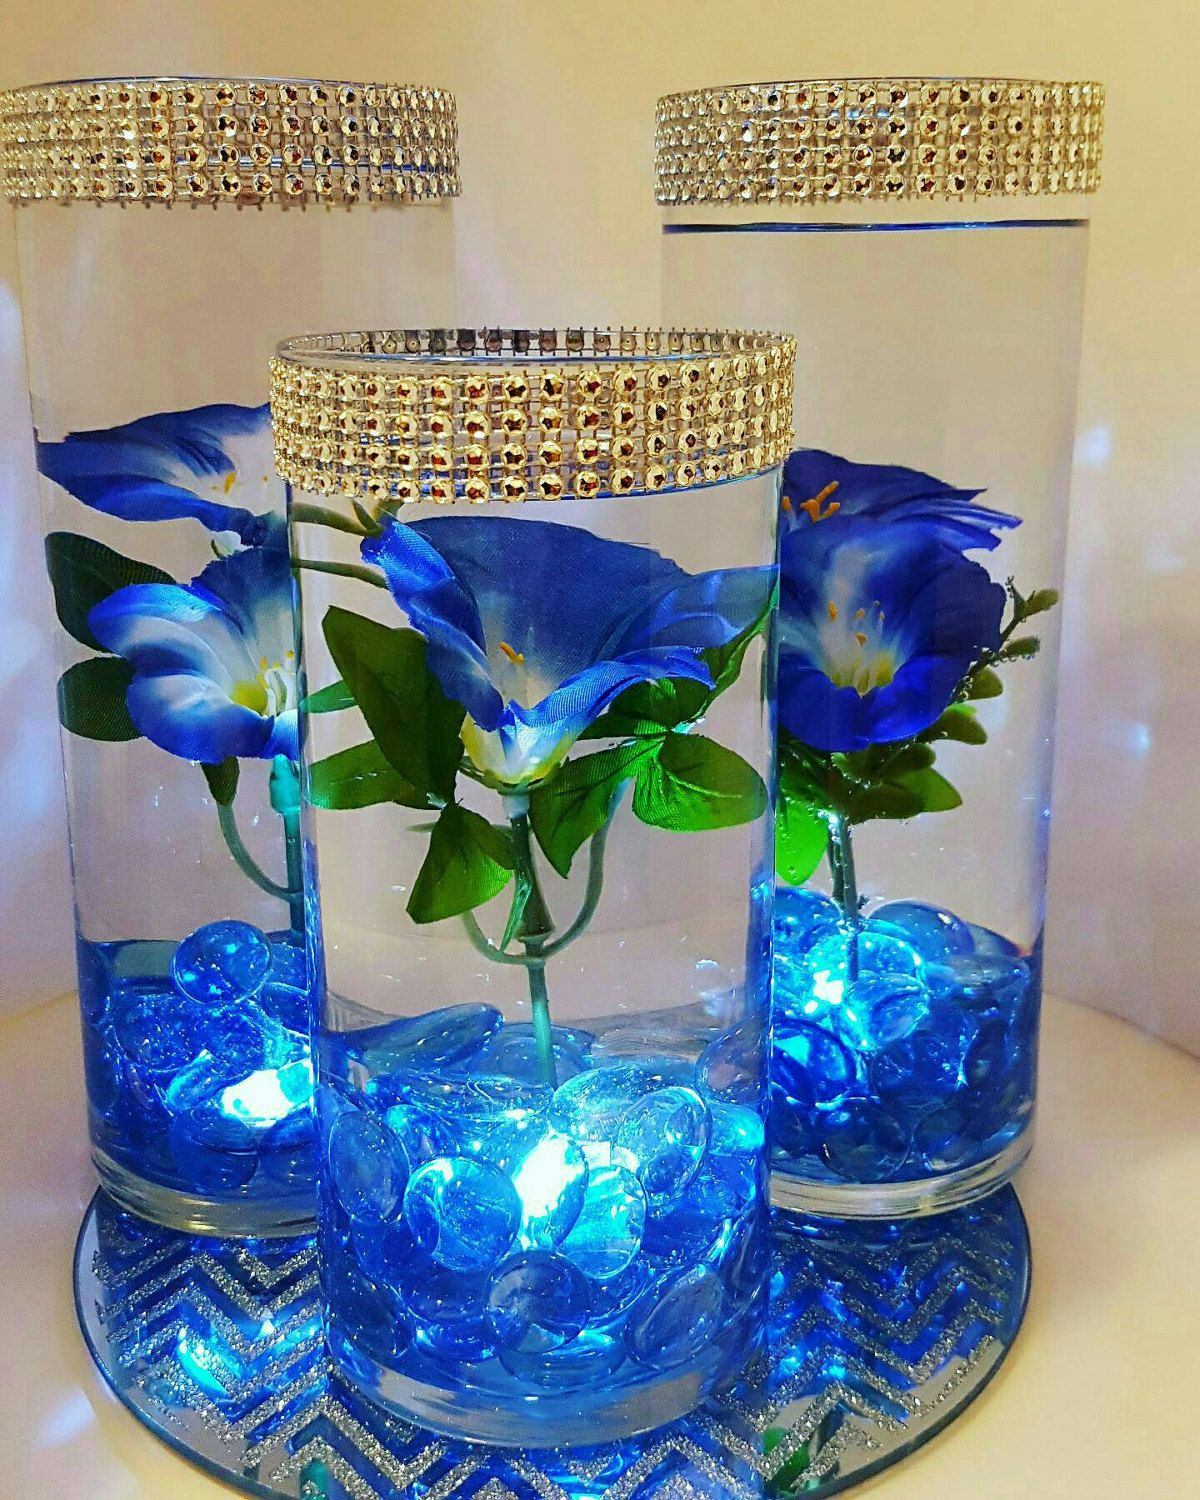 16 Stunning Floating Wedding Centerpiece Ideas: Wedding Centerpiece, Floating Flower Centerpiece, LED